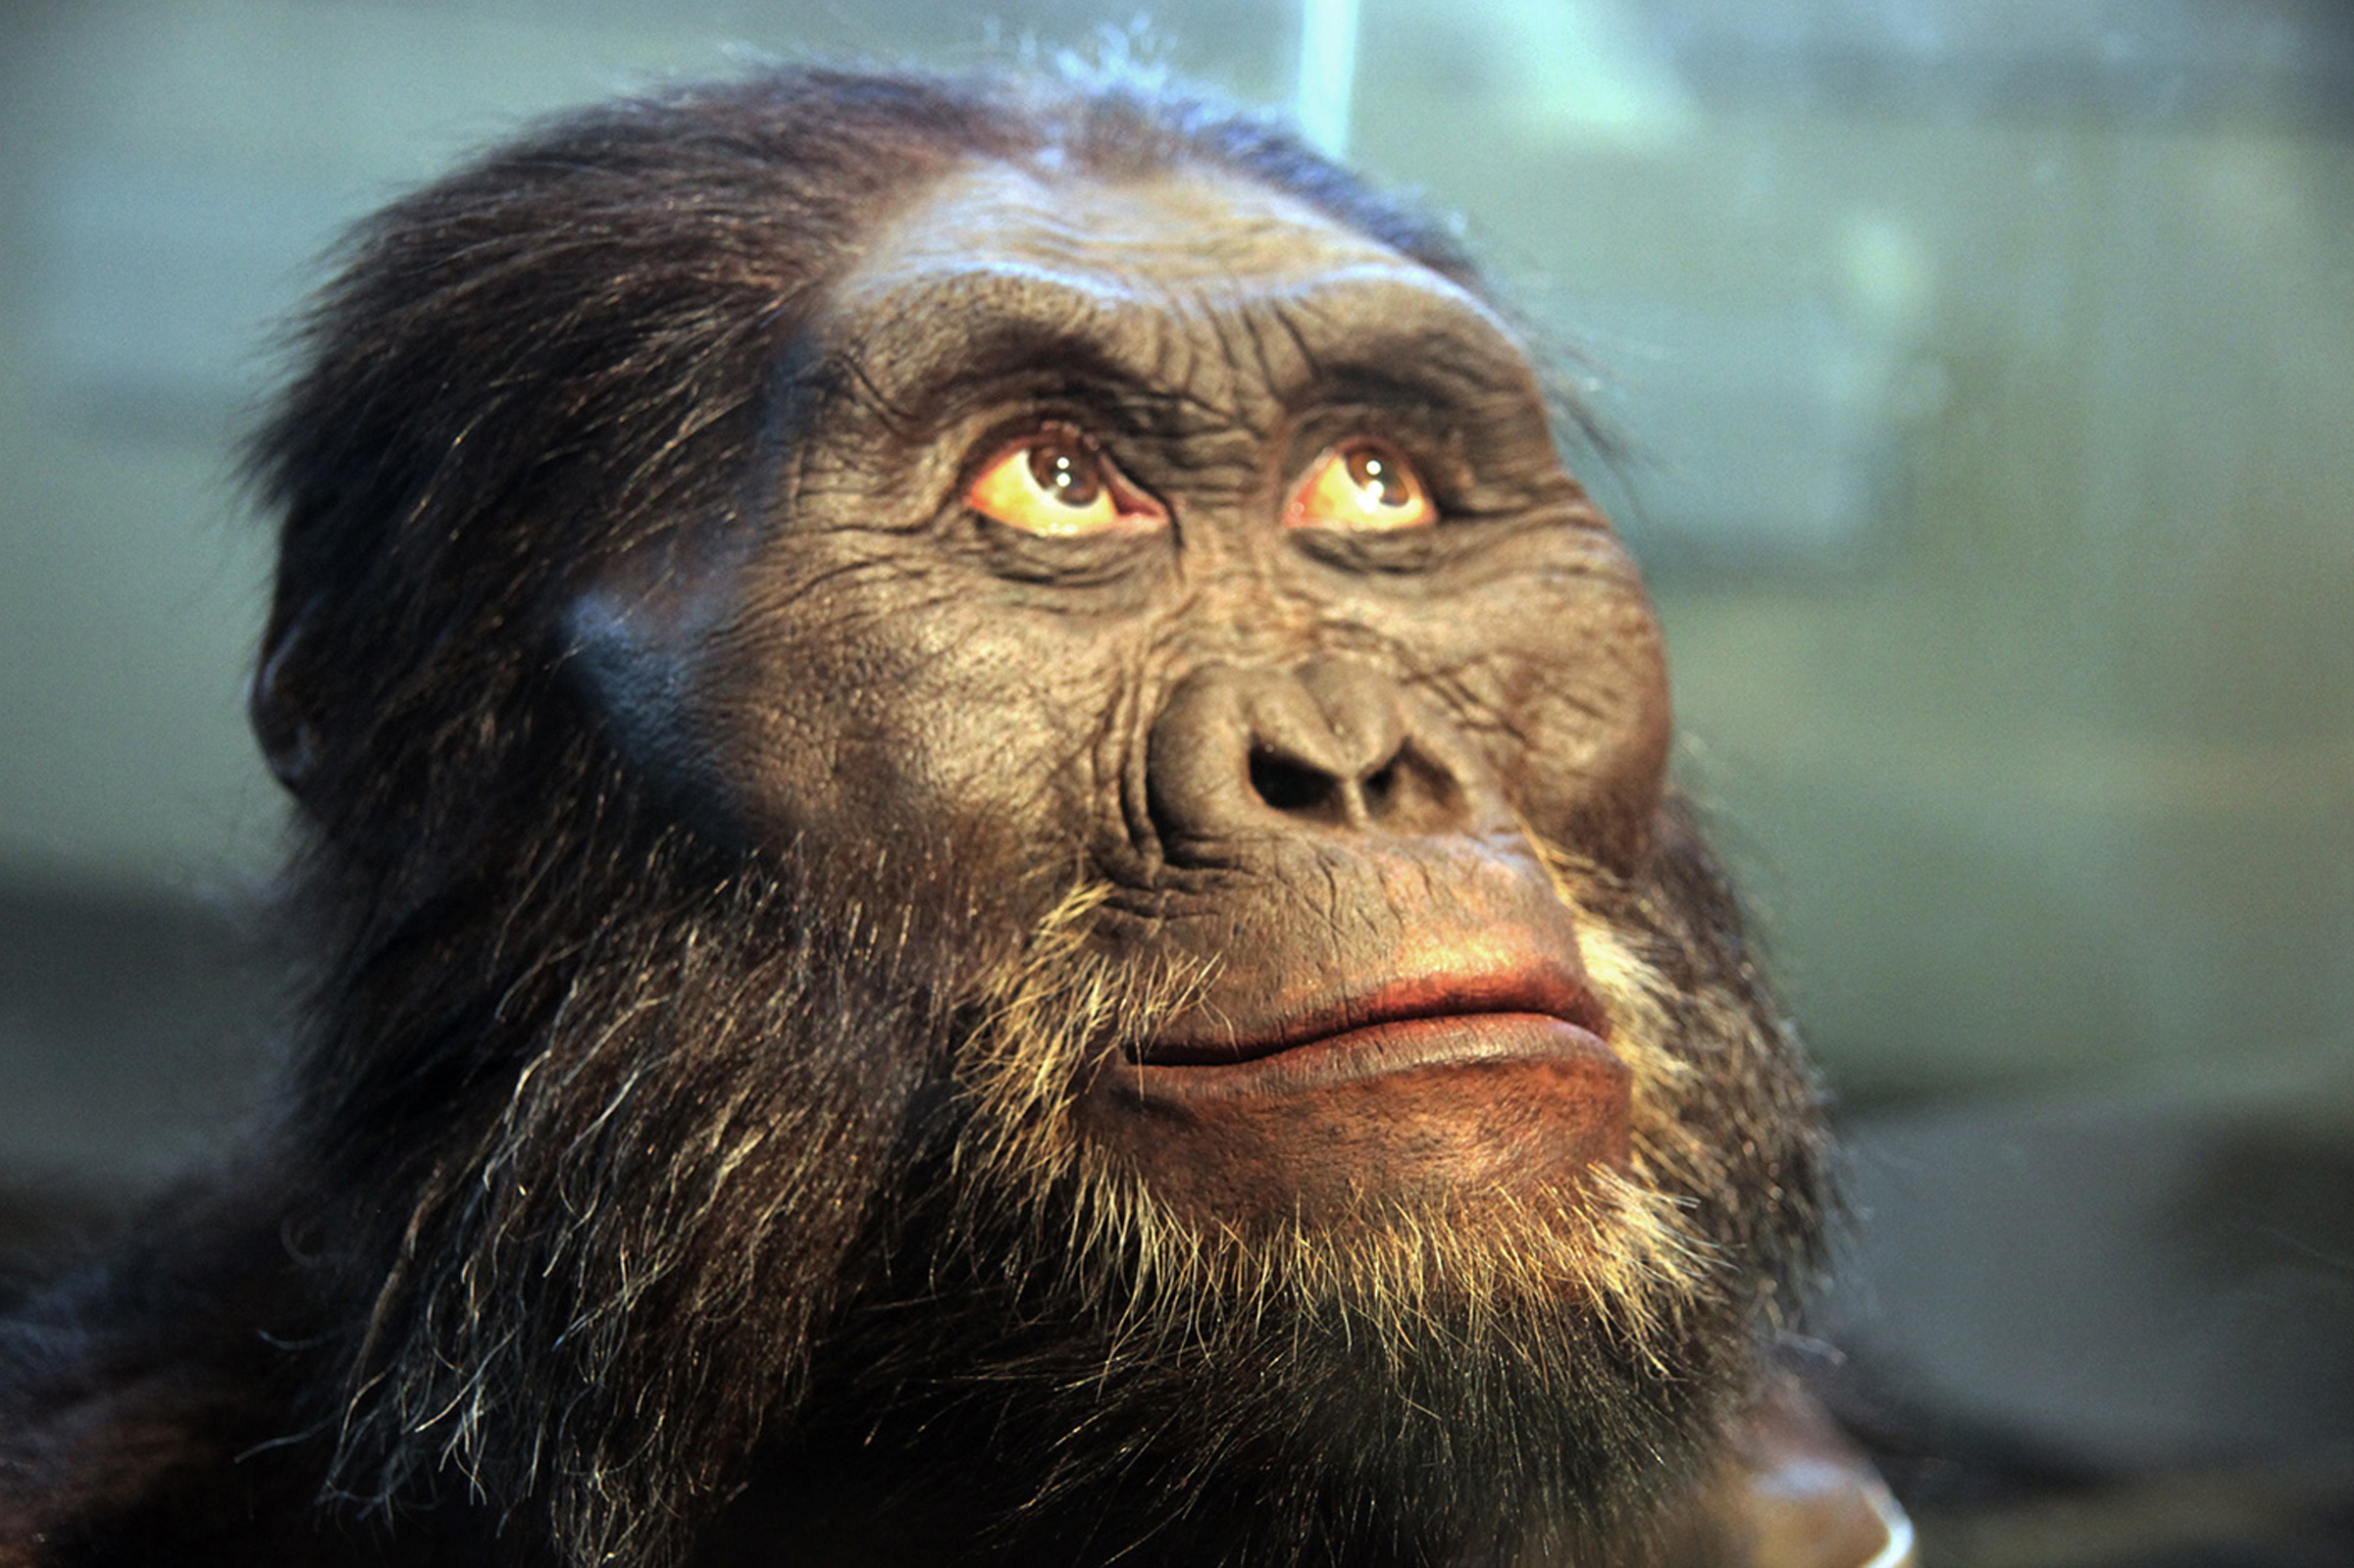 A reconstruction of the head of an Australopithecus afarensis on display in the Hall of Human Origins in the Smithsonian Museum of Natural History in Washington, D.C.